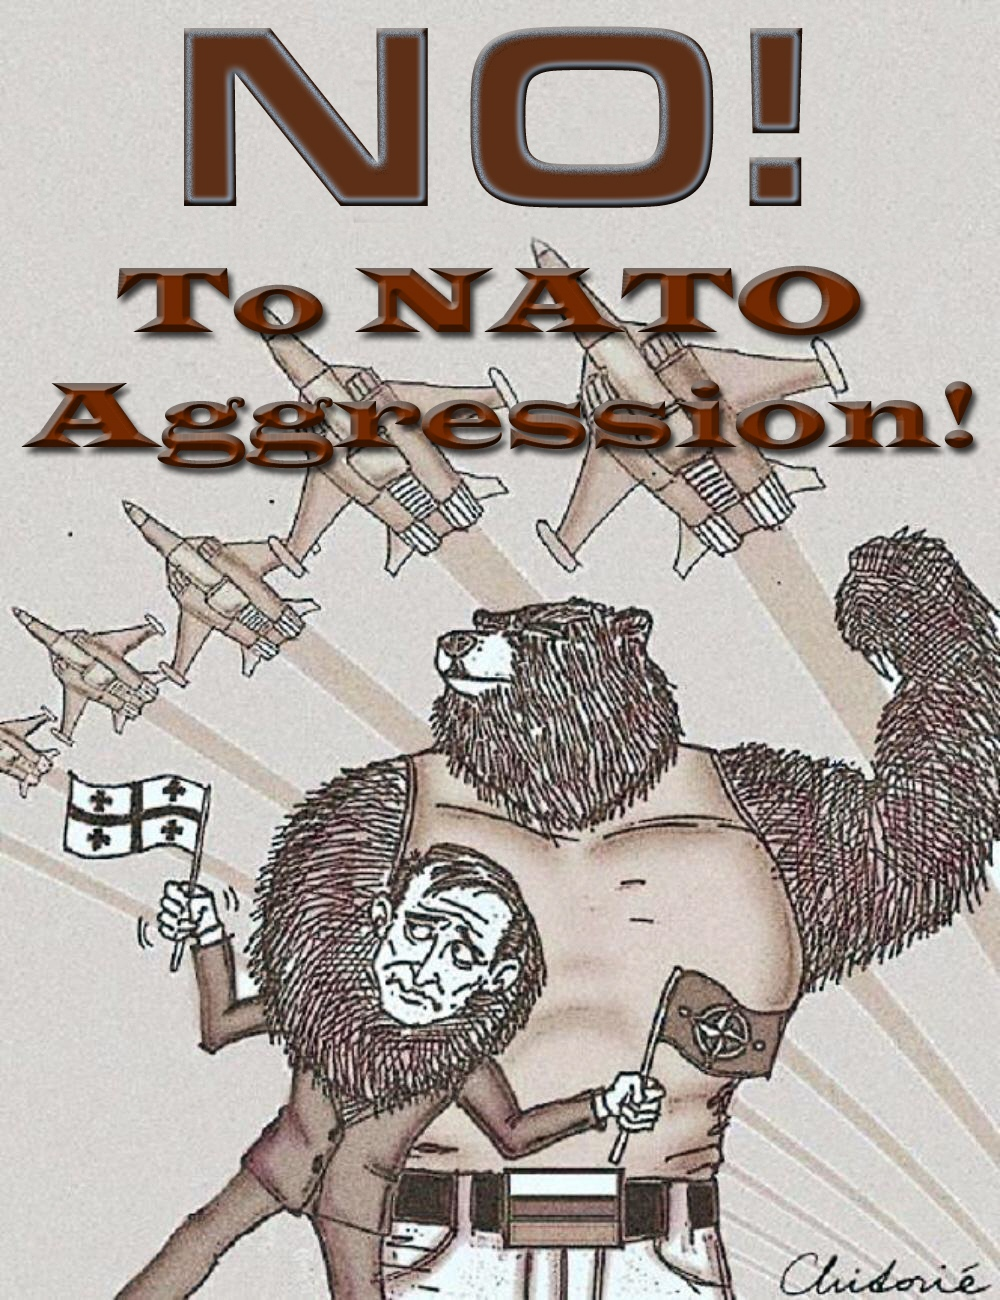 Barbara-Marie Drezhlo. NO! To NATO Aggression! 2012